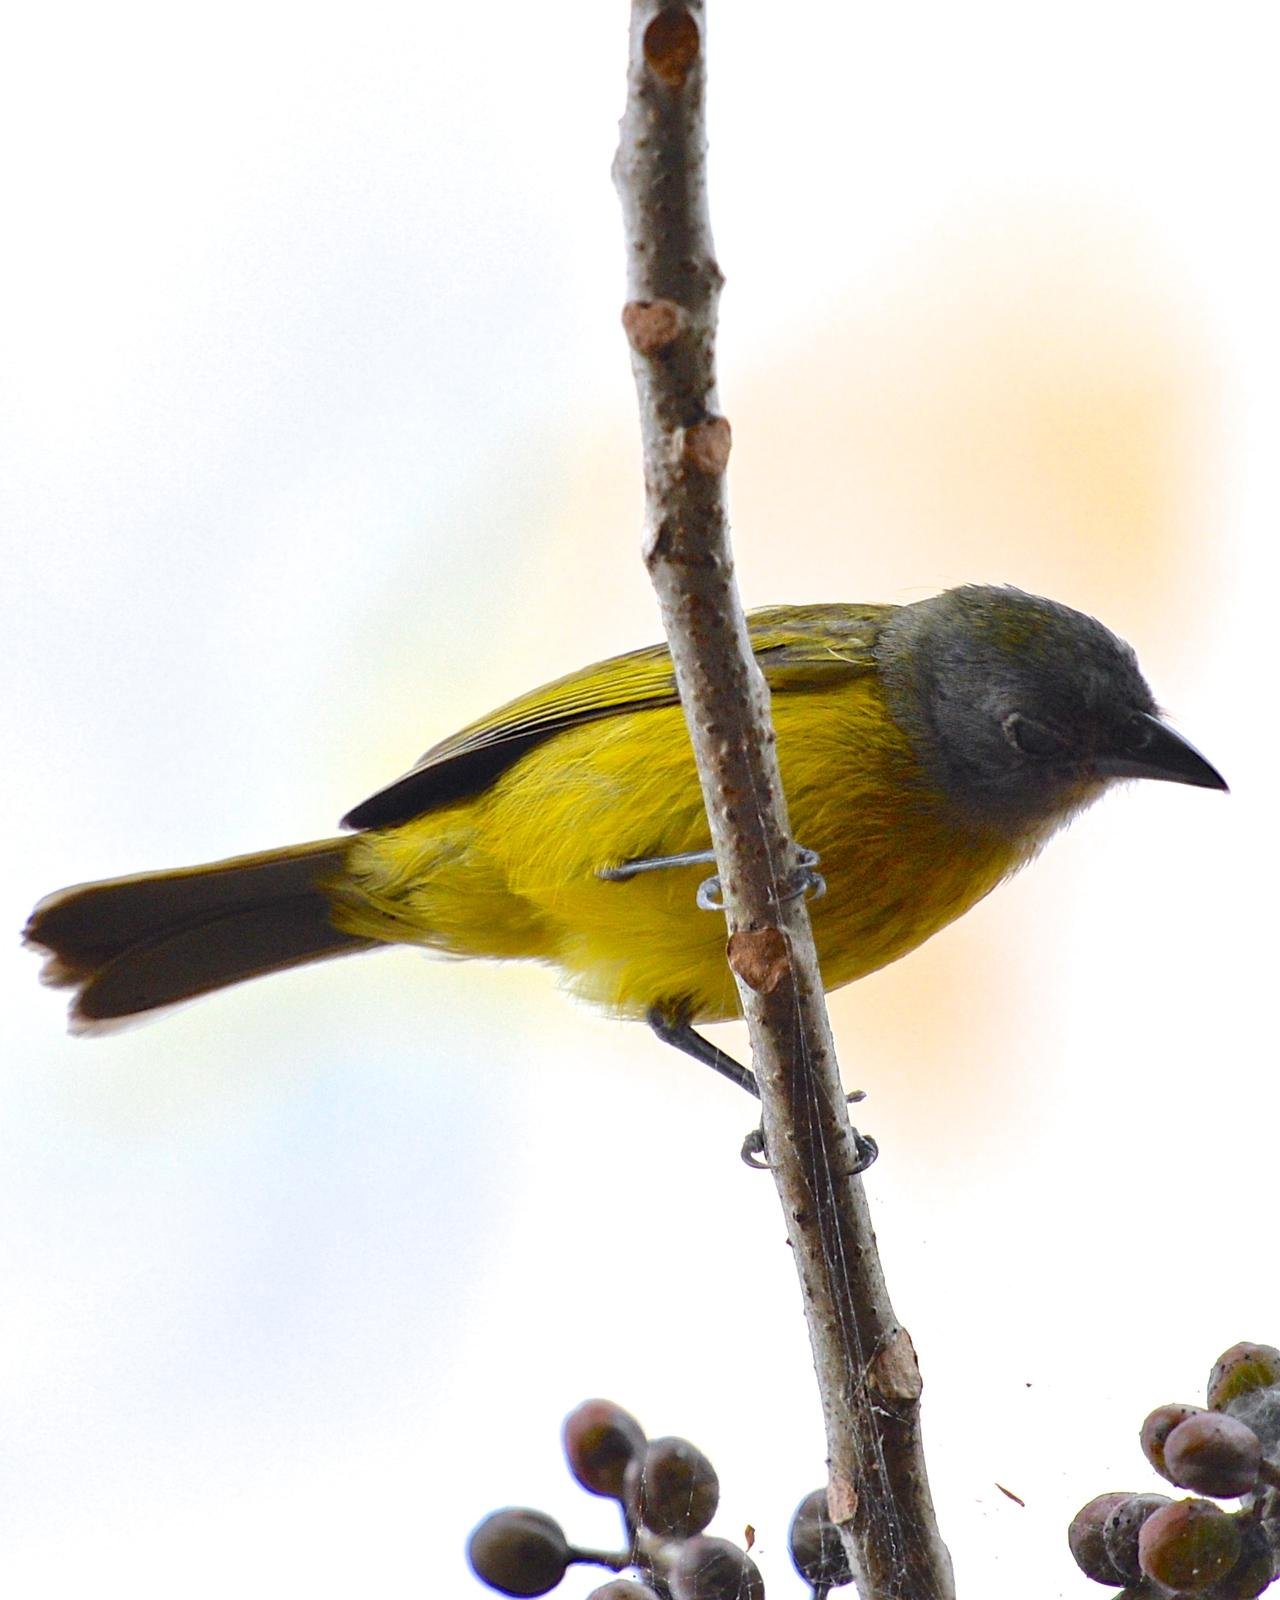 White-shouldered Tanager Photo by Gerald Friesen